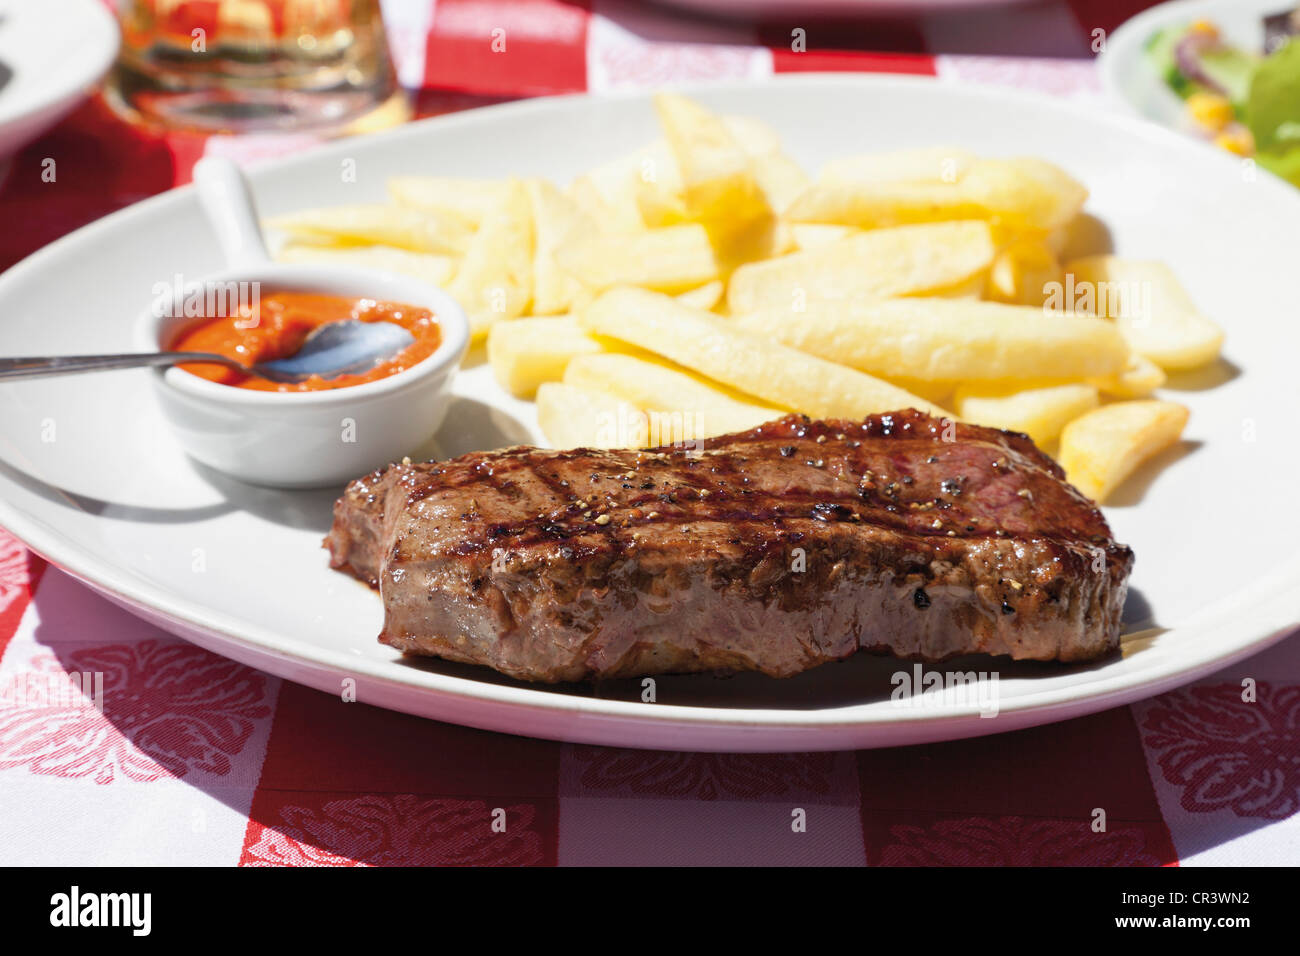 Argentinean rump steak with chips and salsa dip - Stock Image